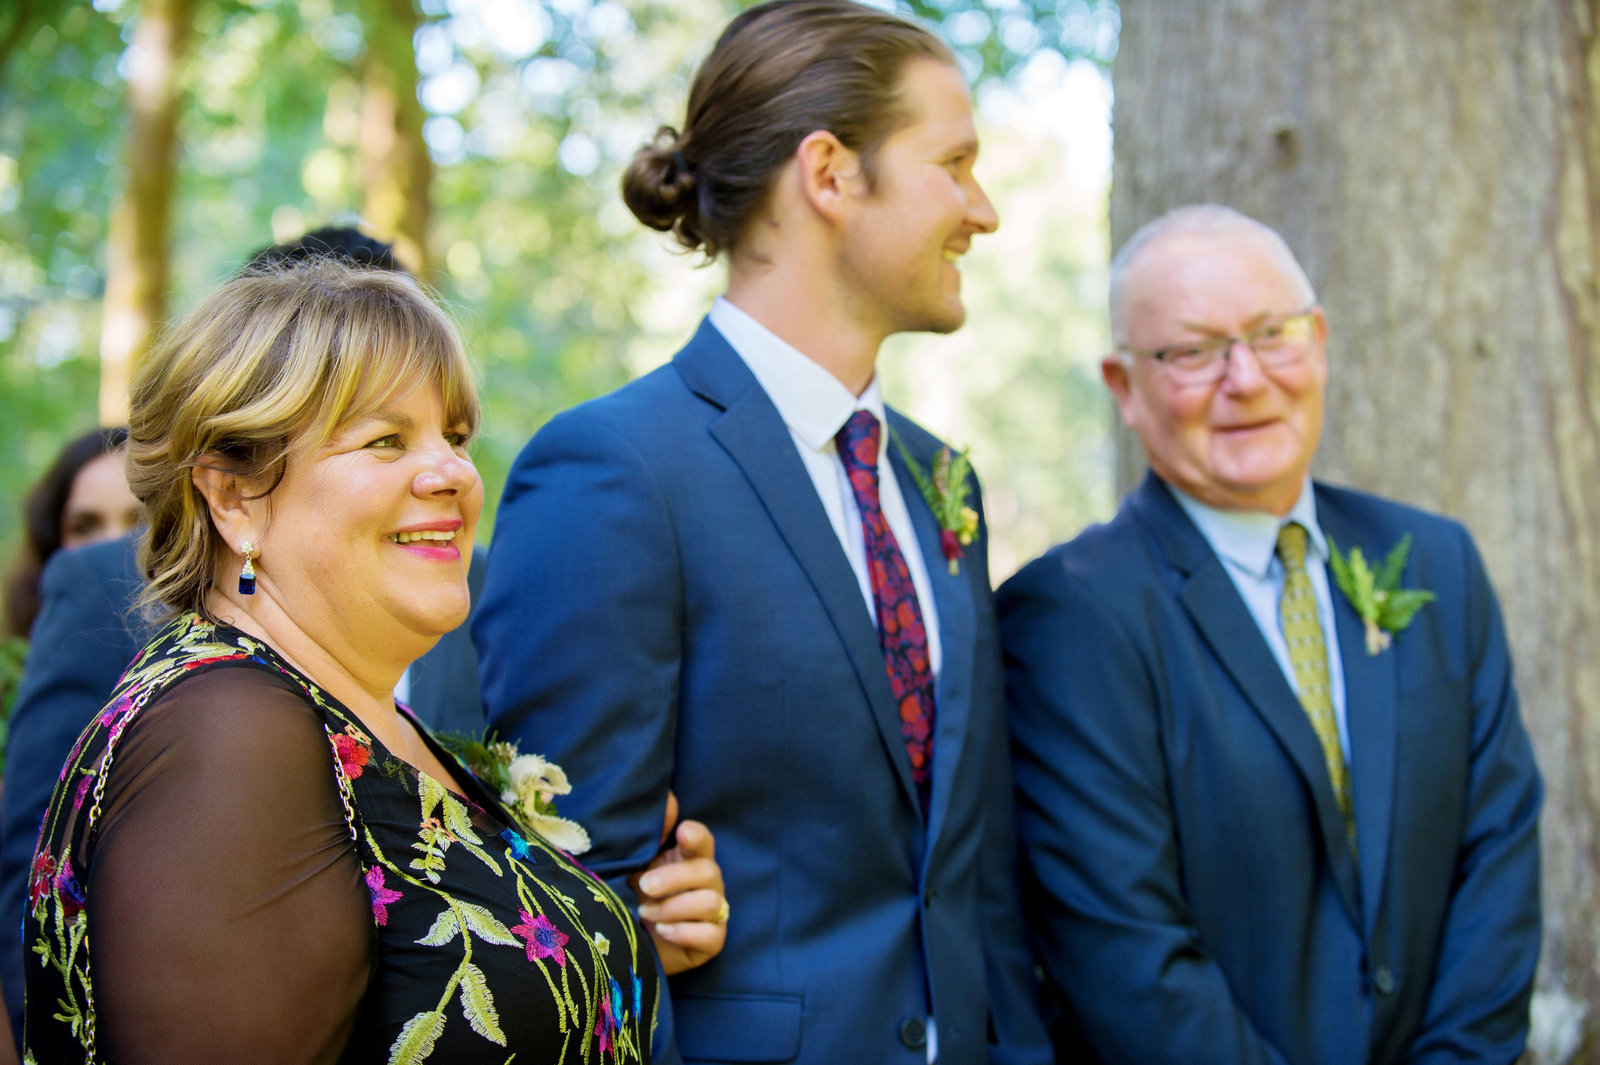 mother and father of groom get ready to walk son down the aisle